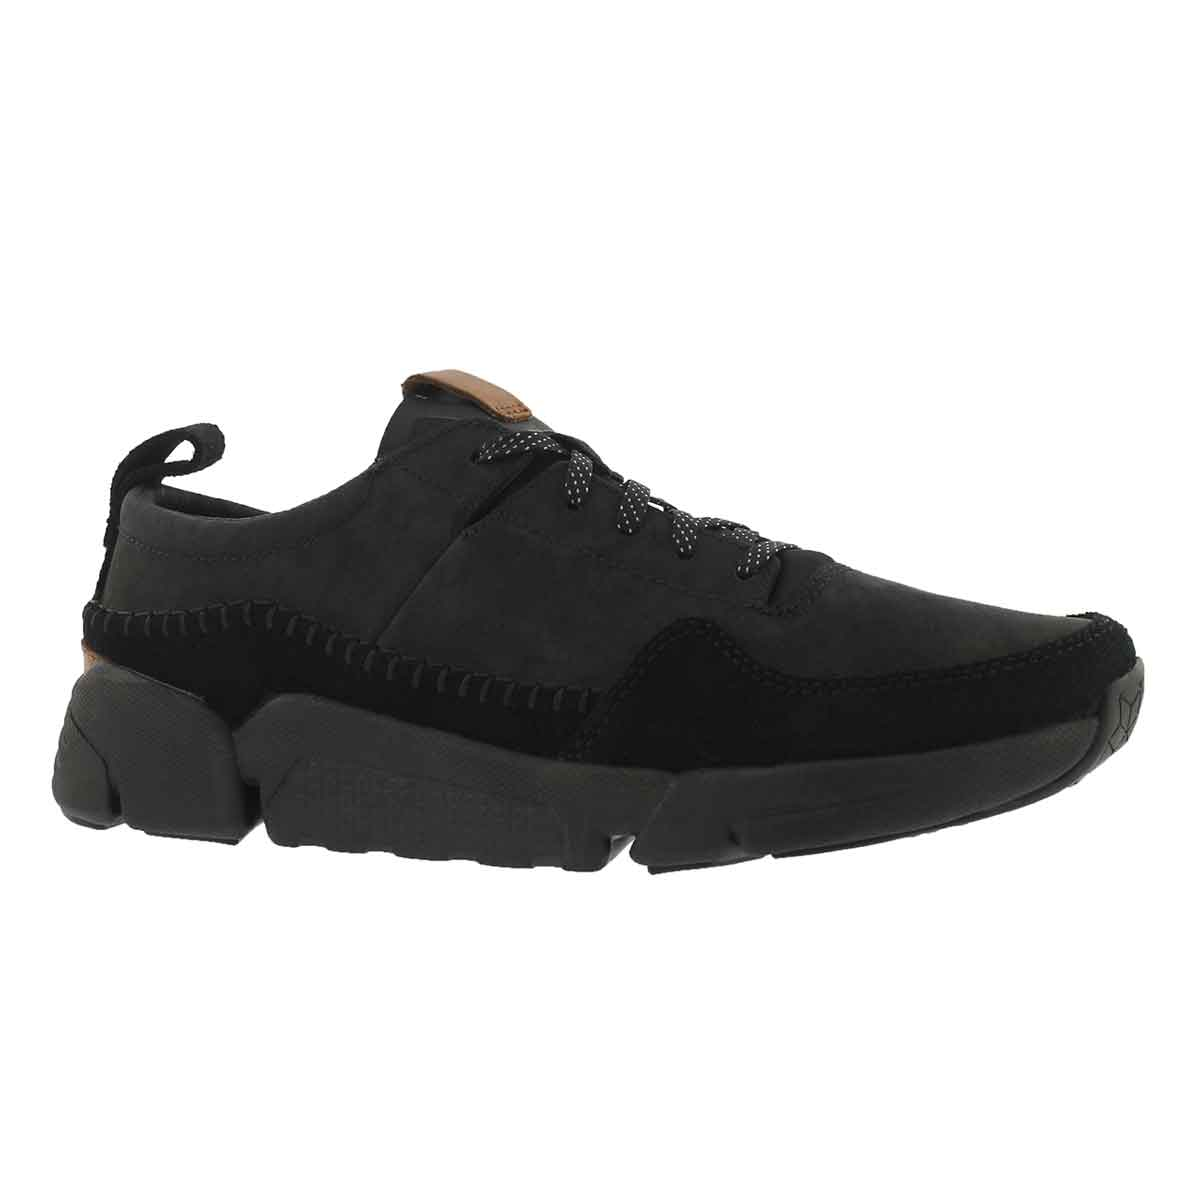 Men's TRIACTIVE RUN black lace up sneakers